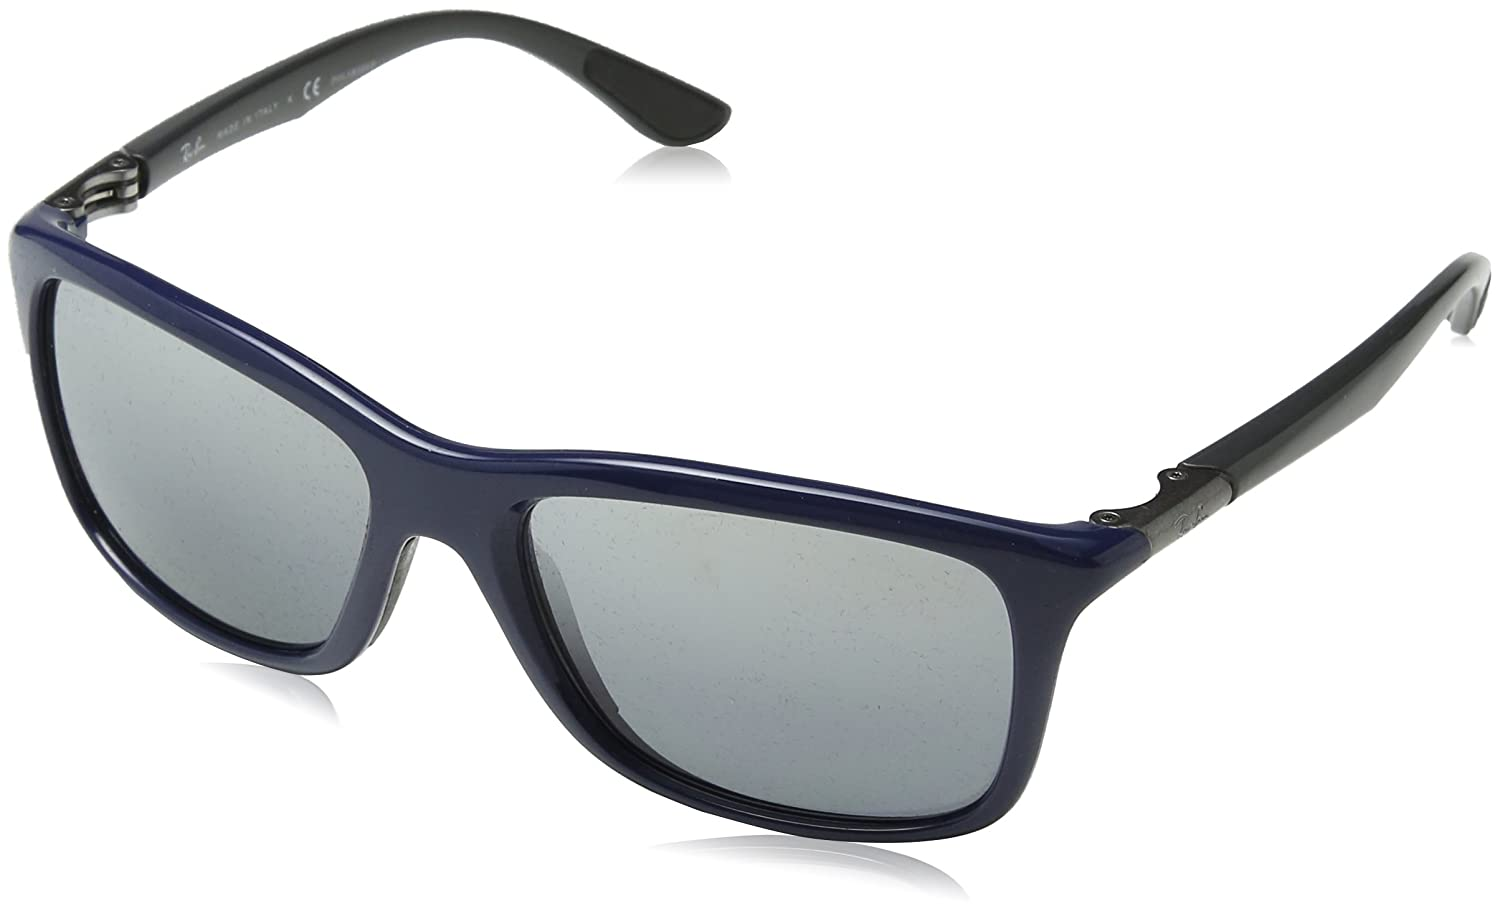 TALLA 57 mm. Ray-Ban Sonnenbrille (RB 8352)